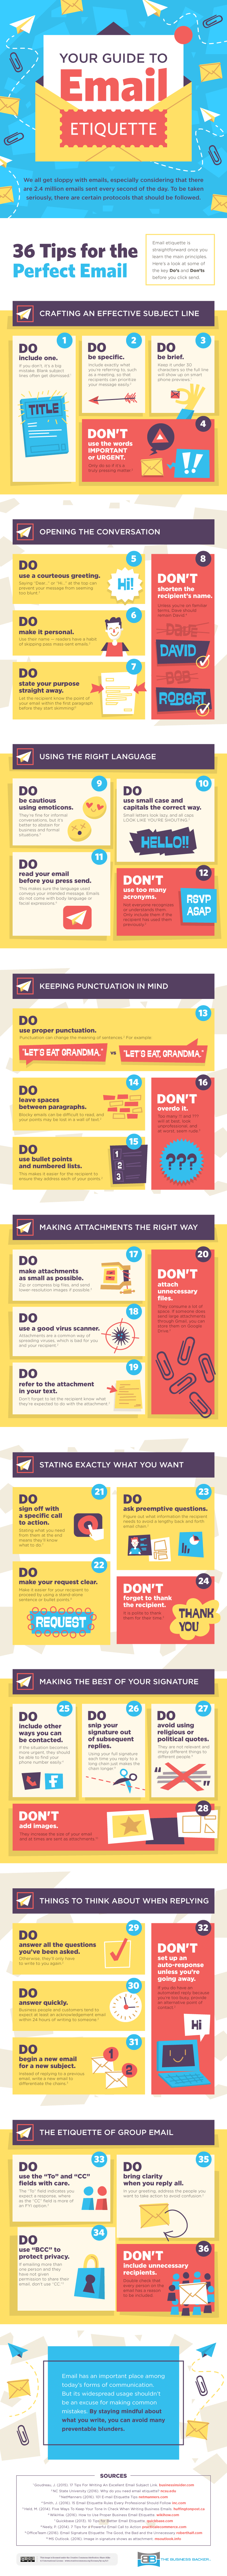 The 36 Fundamentals of Email Etiquette